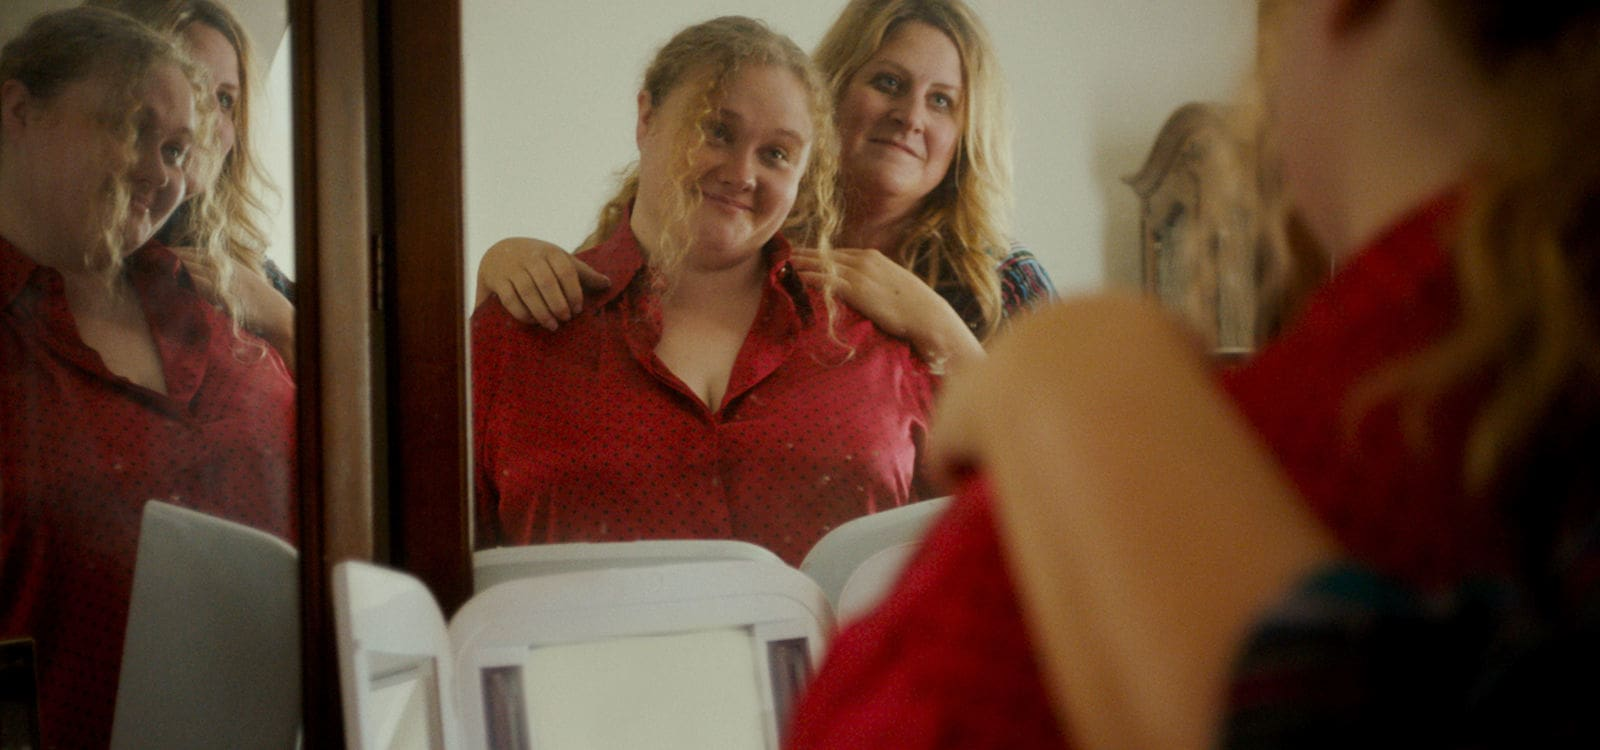 "Bridget Everett (as Bard) and Danielle Macdonald (as Patti) looking into a mirror in the movie ""Patti Cake$"""